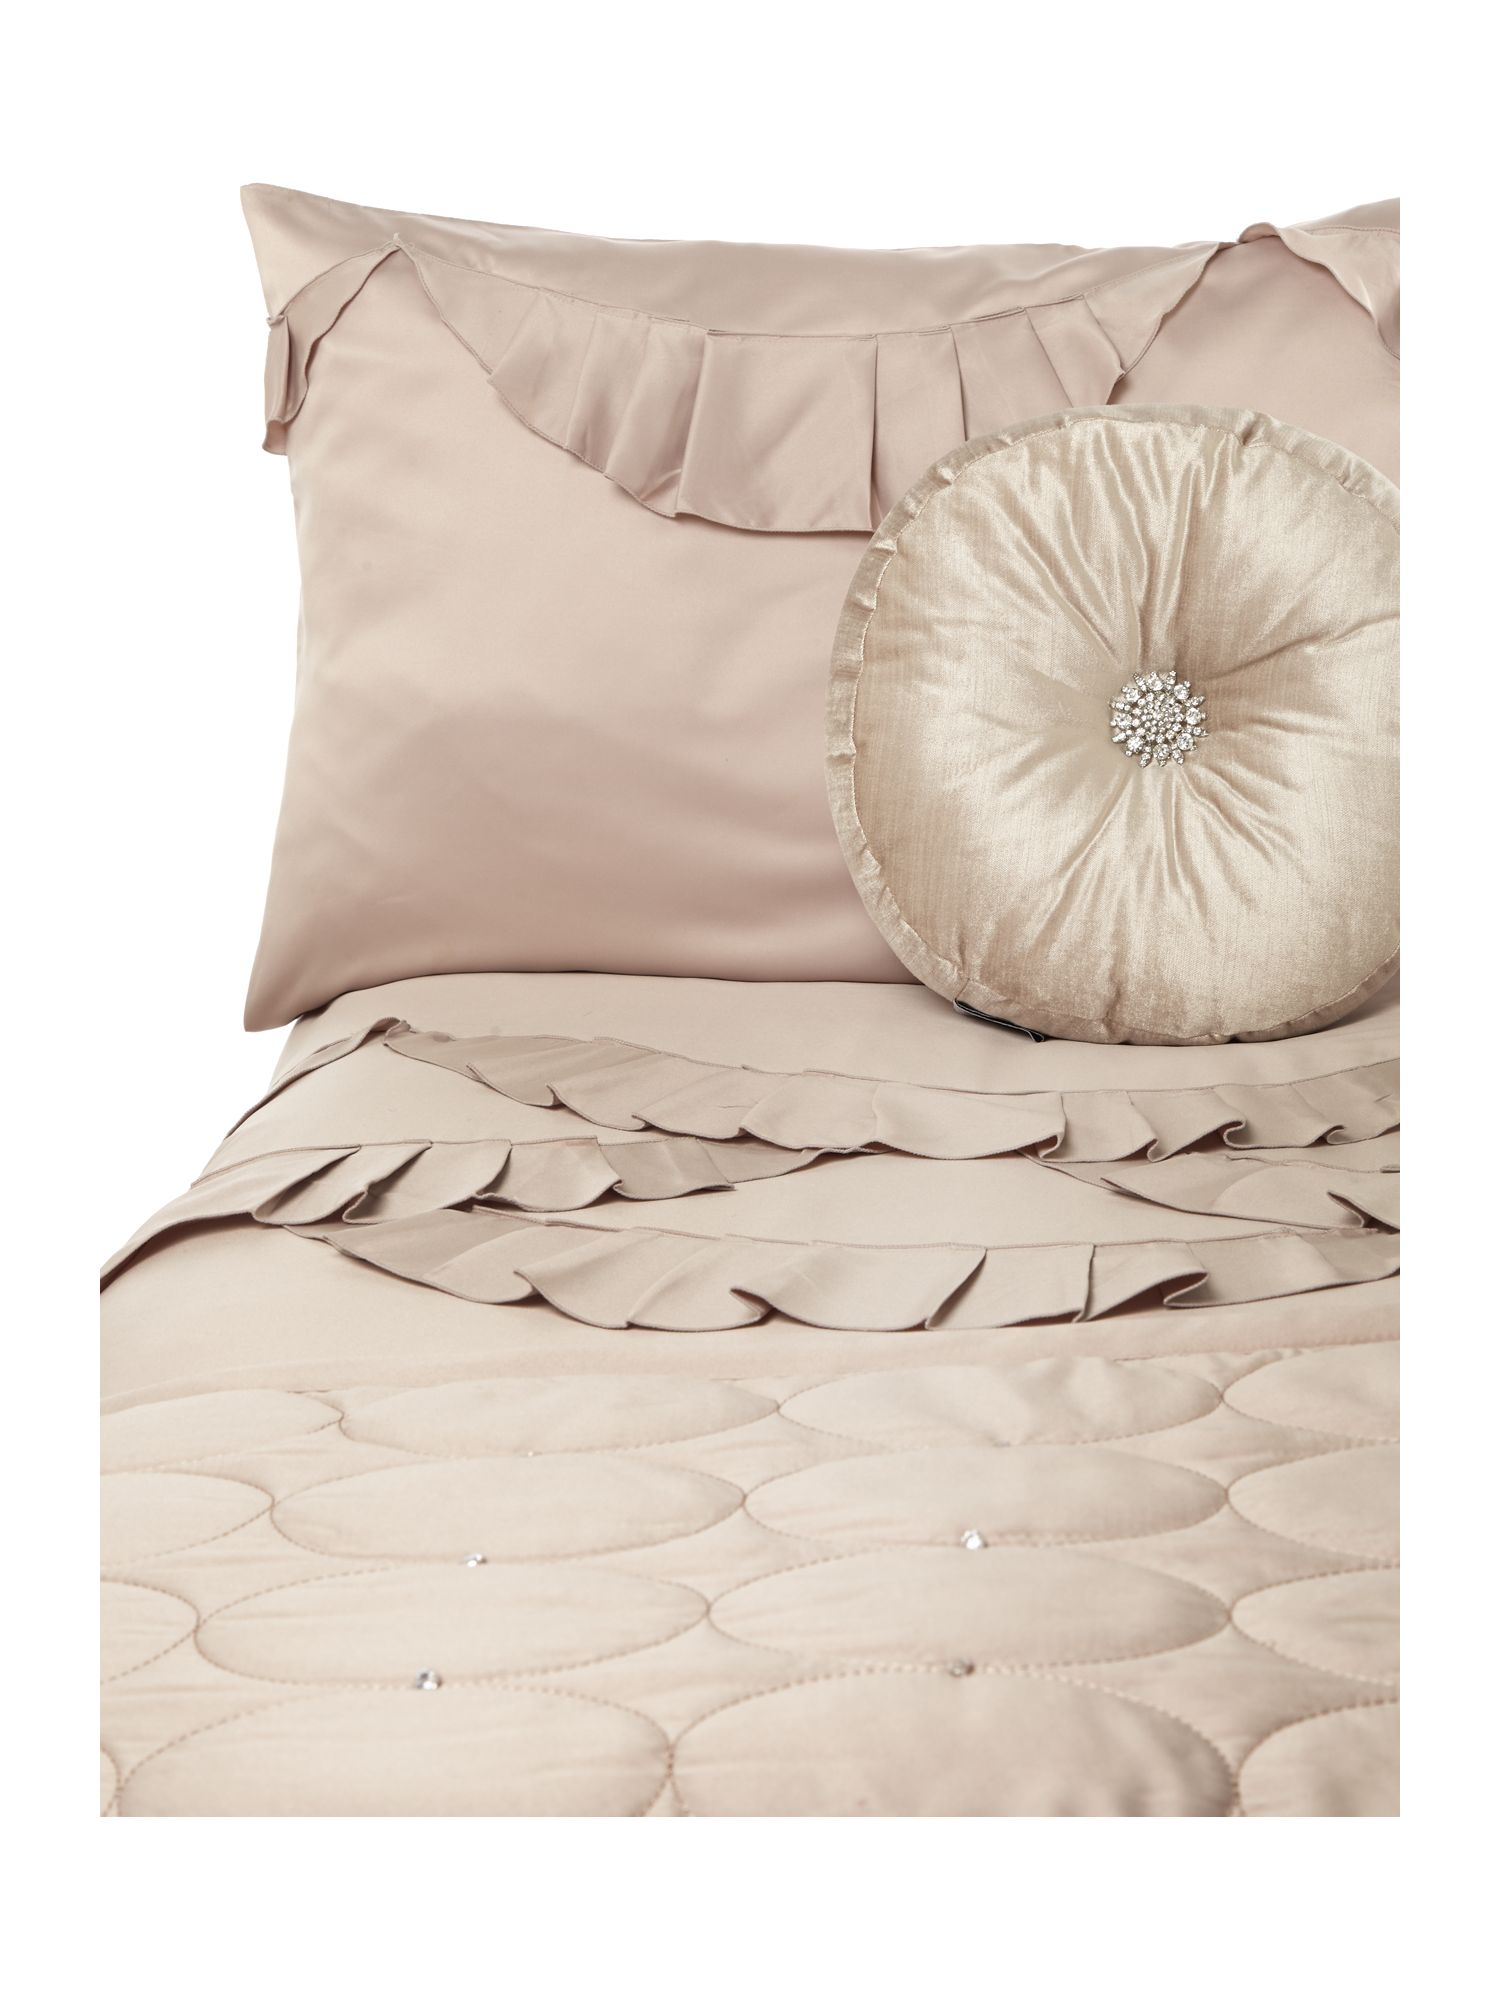 Evangeline bed linen in beige